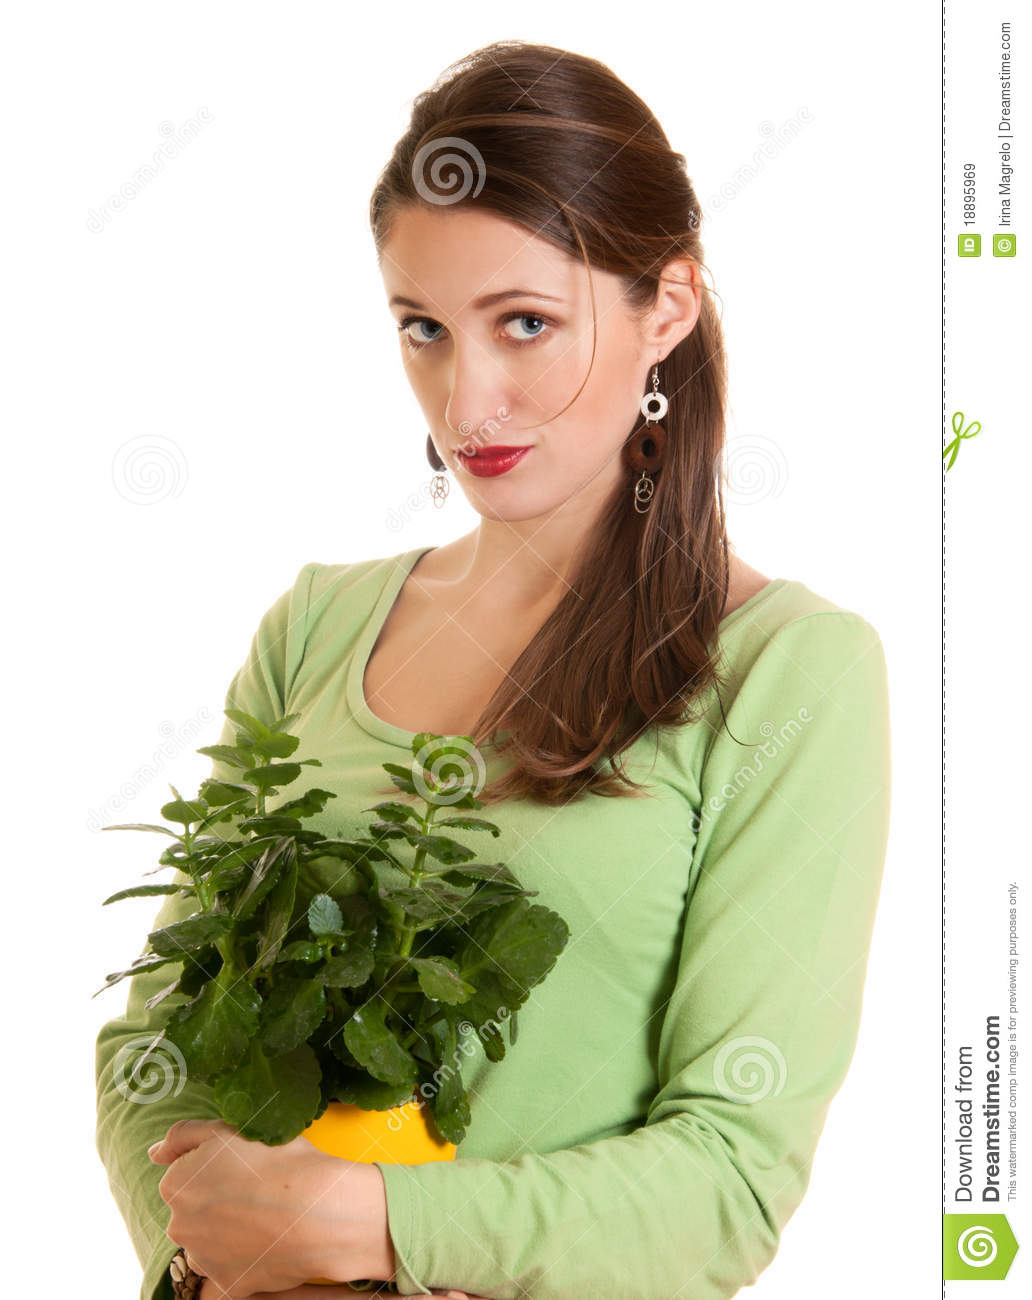 Woman with plant stock image. Image of female, color ...